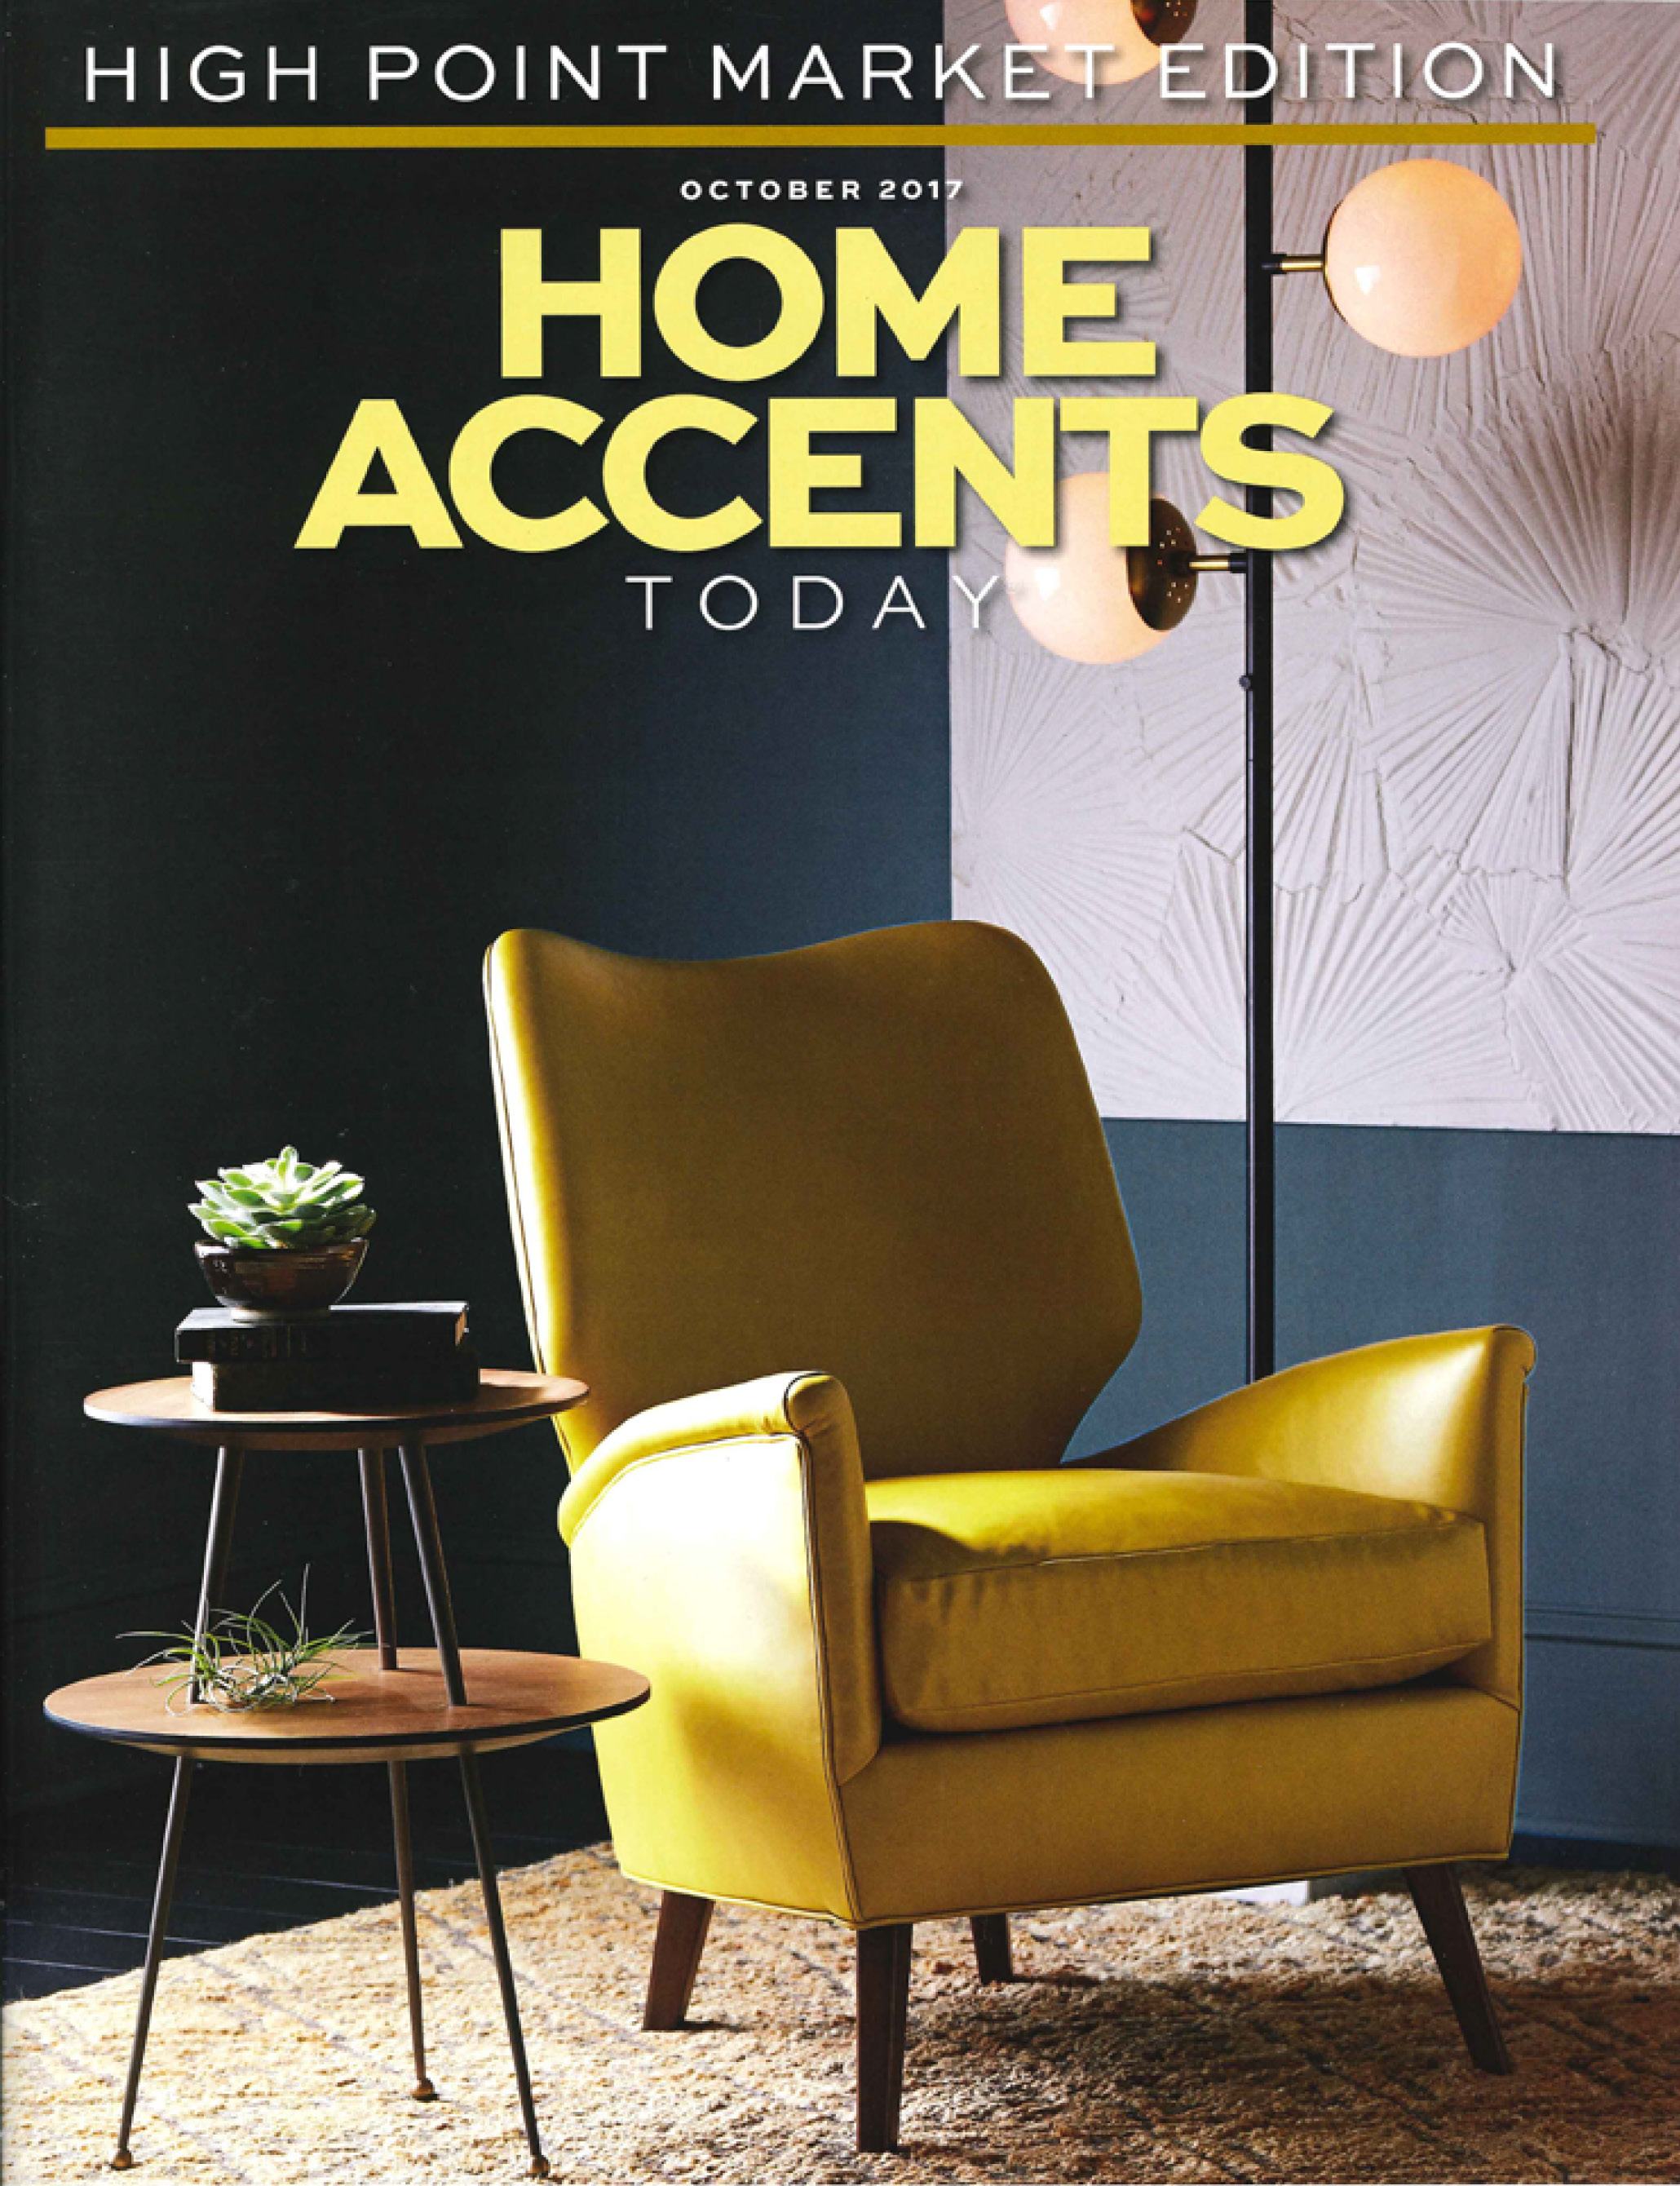 Home Accents Today, October 2017